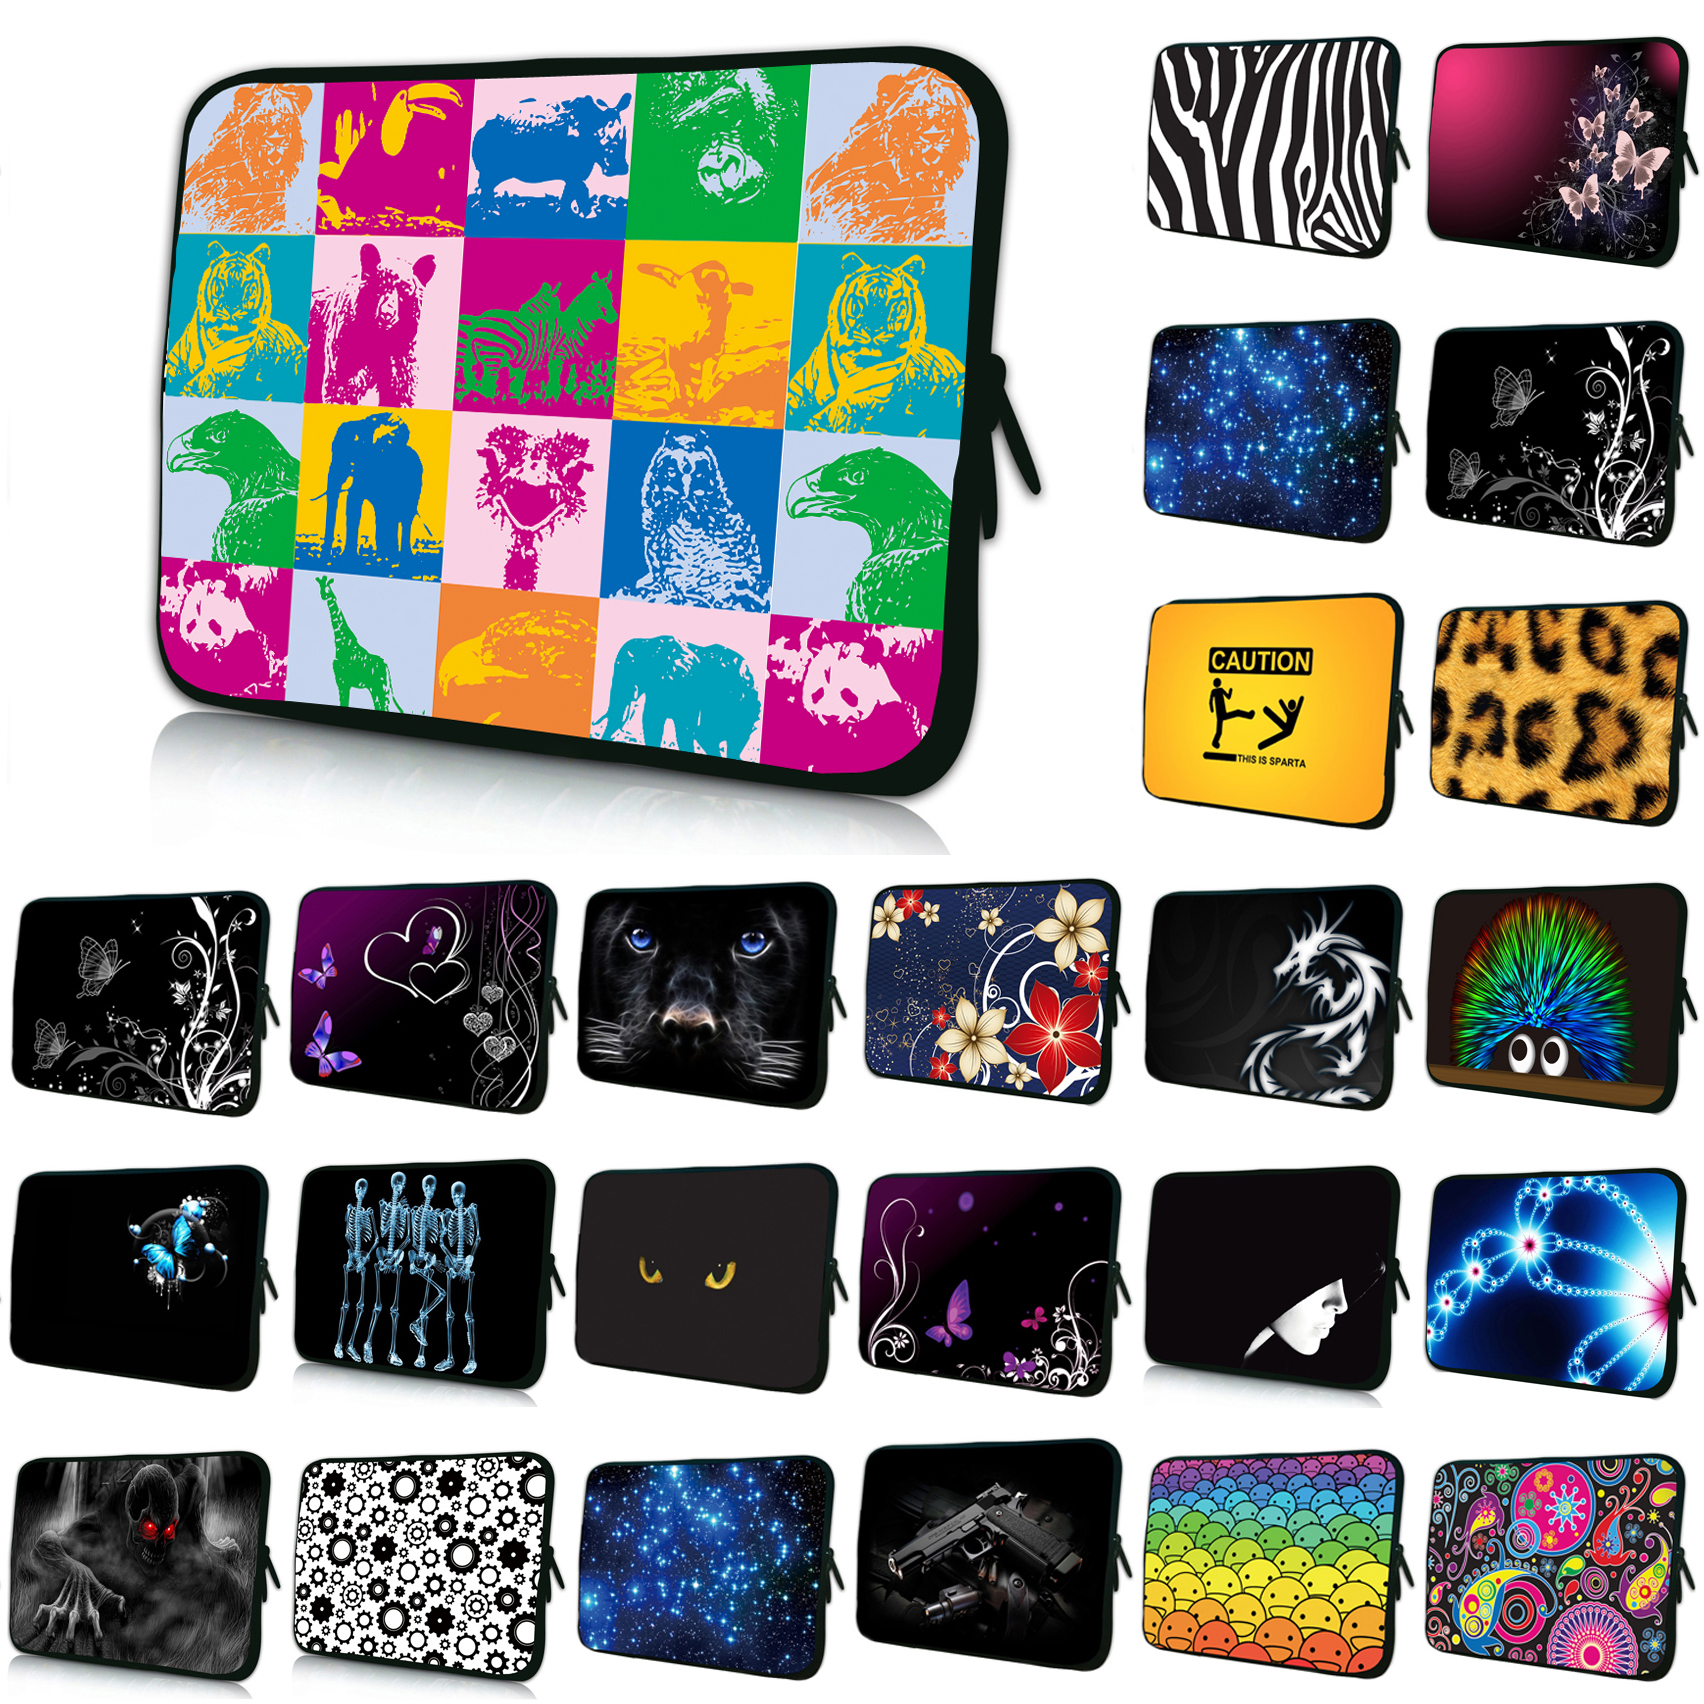 14 Cute Notebook Computer Shockproof Inner Soft Bags Case For Dell HP IBM 14.4 14.1 14 Inch Laptop Briefcase Brand New Bags<br><br>Aliexpress